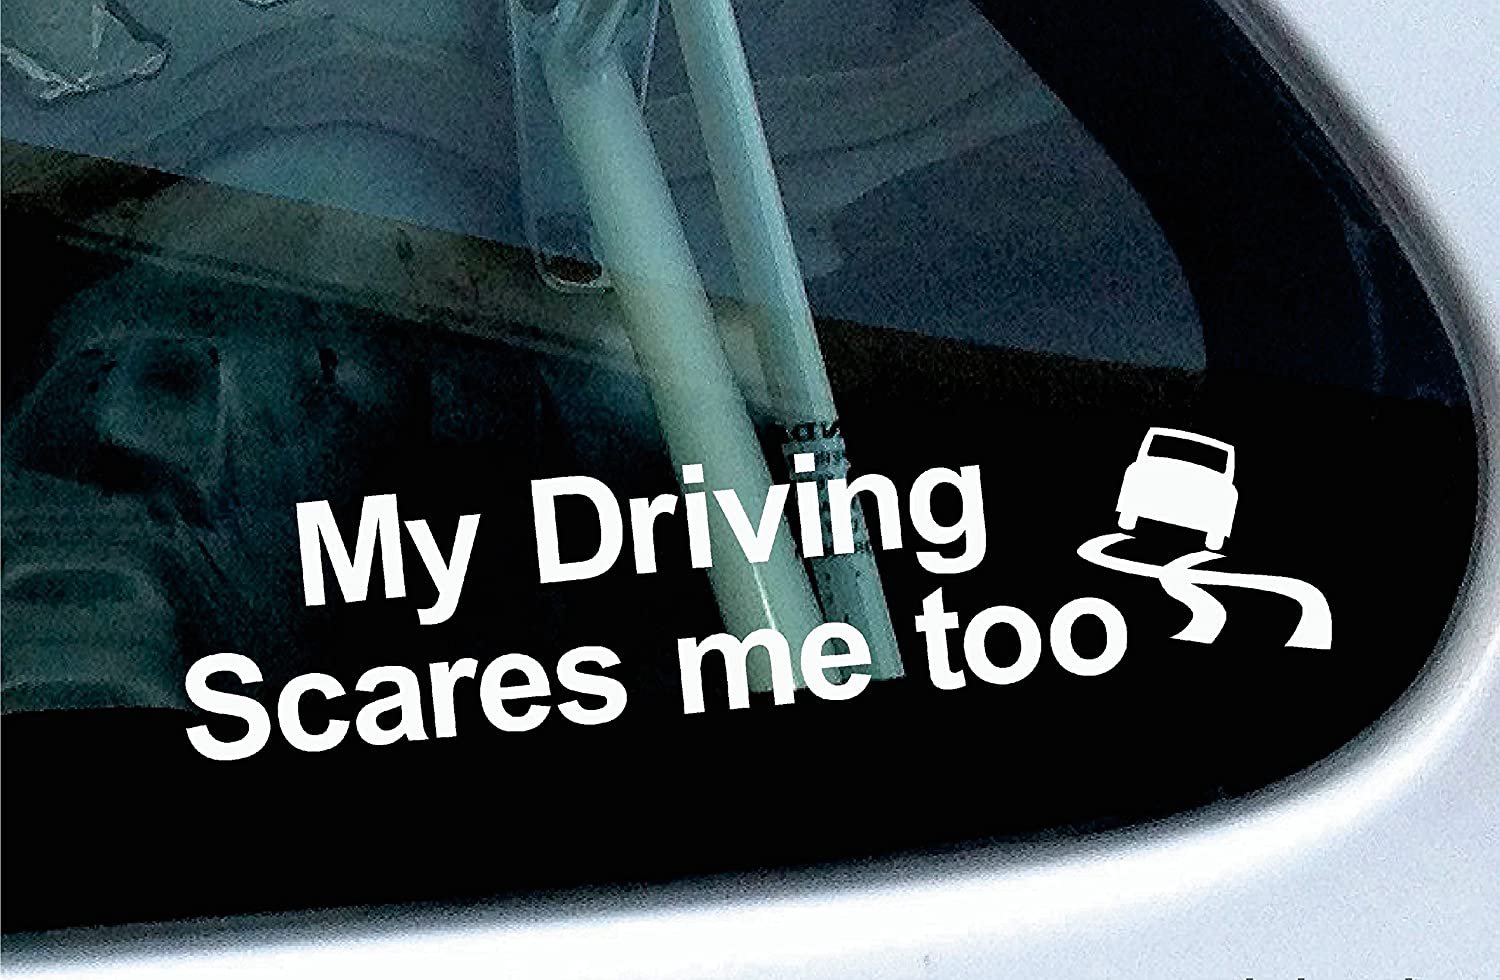 IM ONLY DRIVING LIKE THIS  BUMPER STICKER FUNNY  WINDOW PAINTWORK STICKER VINYL